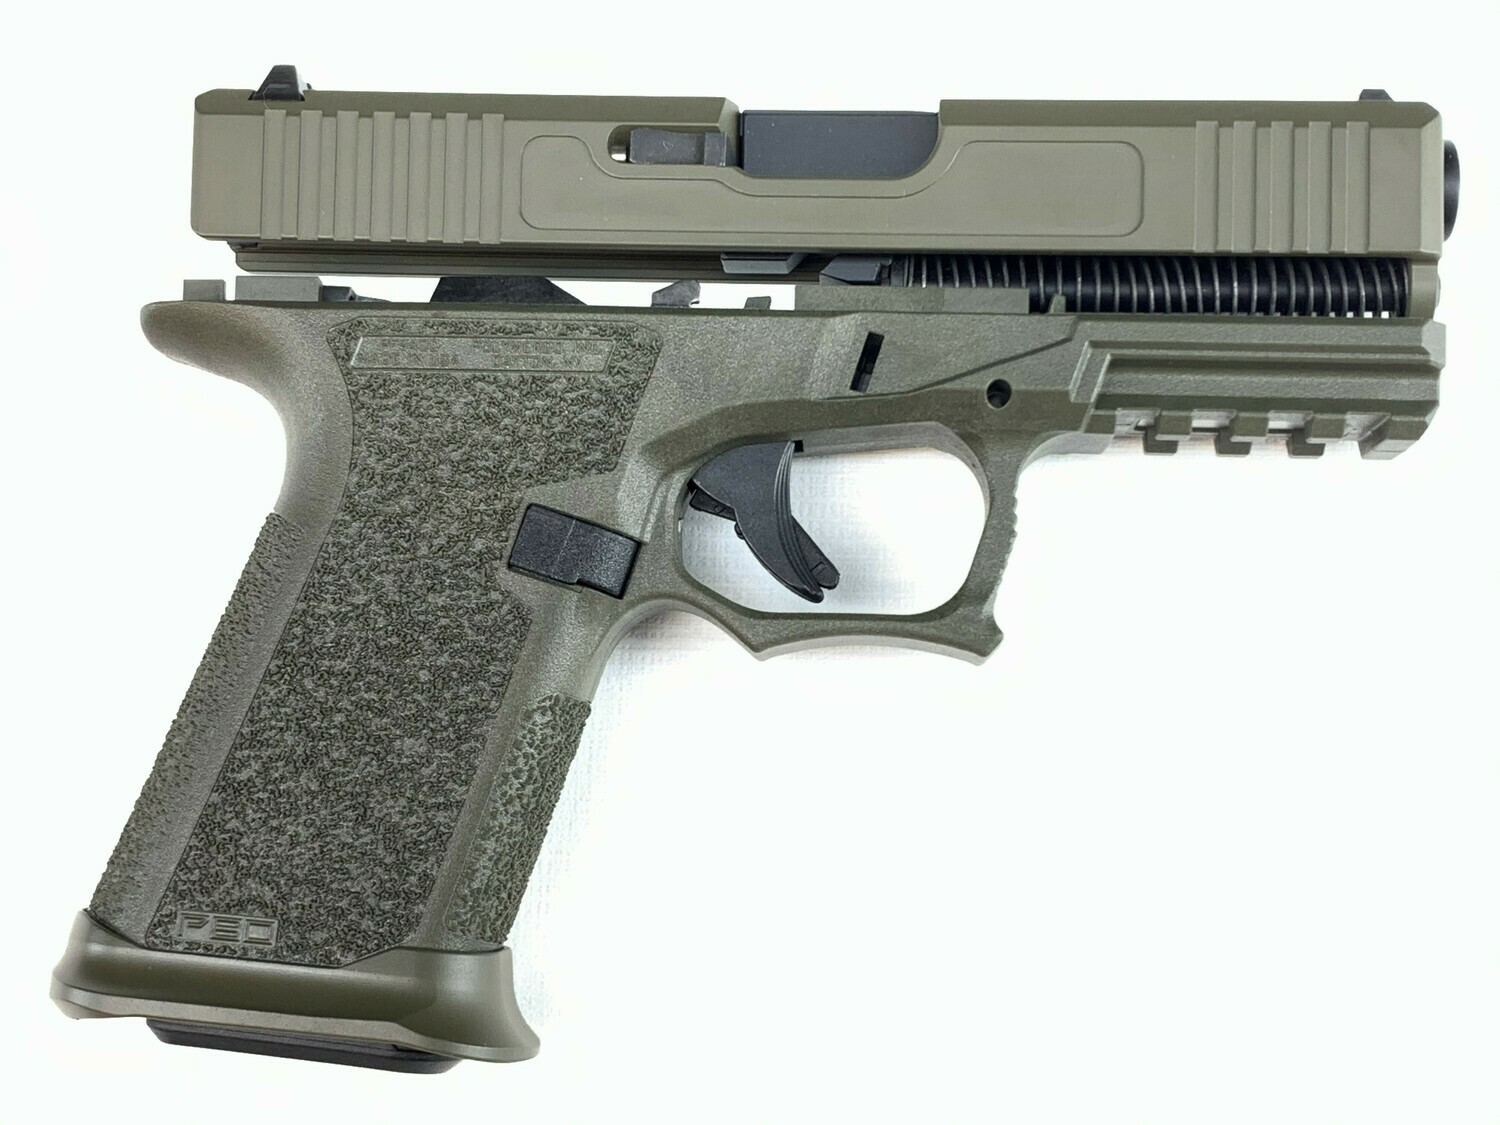 Patriot G19 80% Pistol Build Kit 9mm - Polymer80 PF940C - OD Green - Steel City Arsenal Magwell OD Green - 10rd Mag